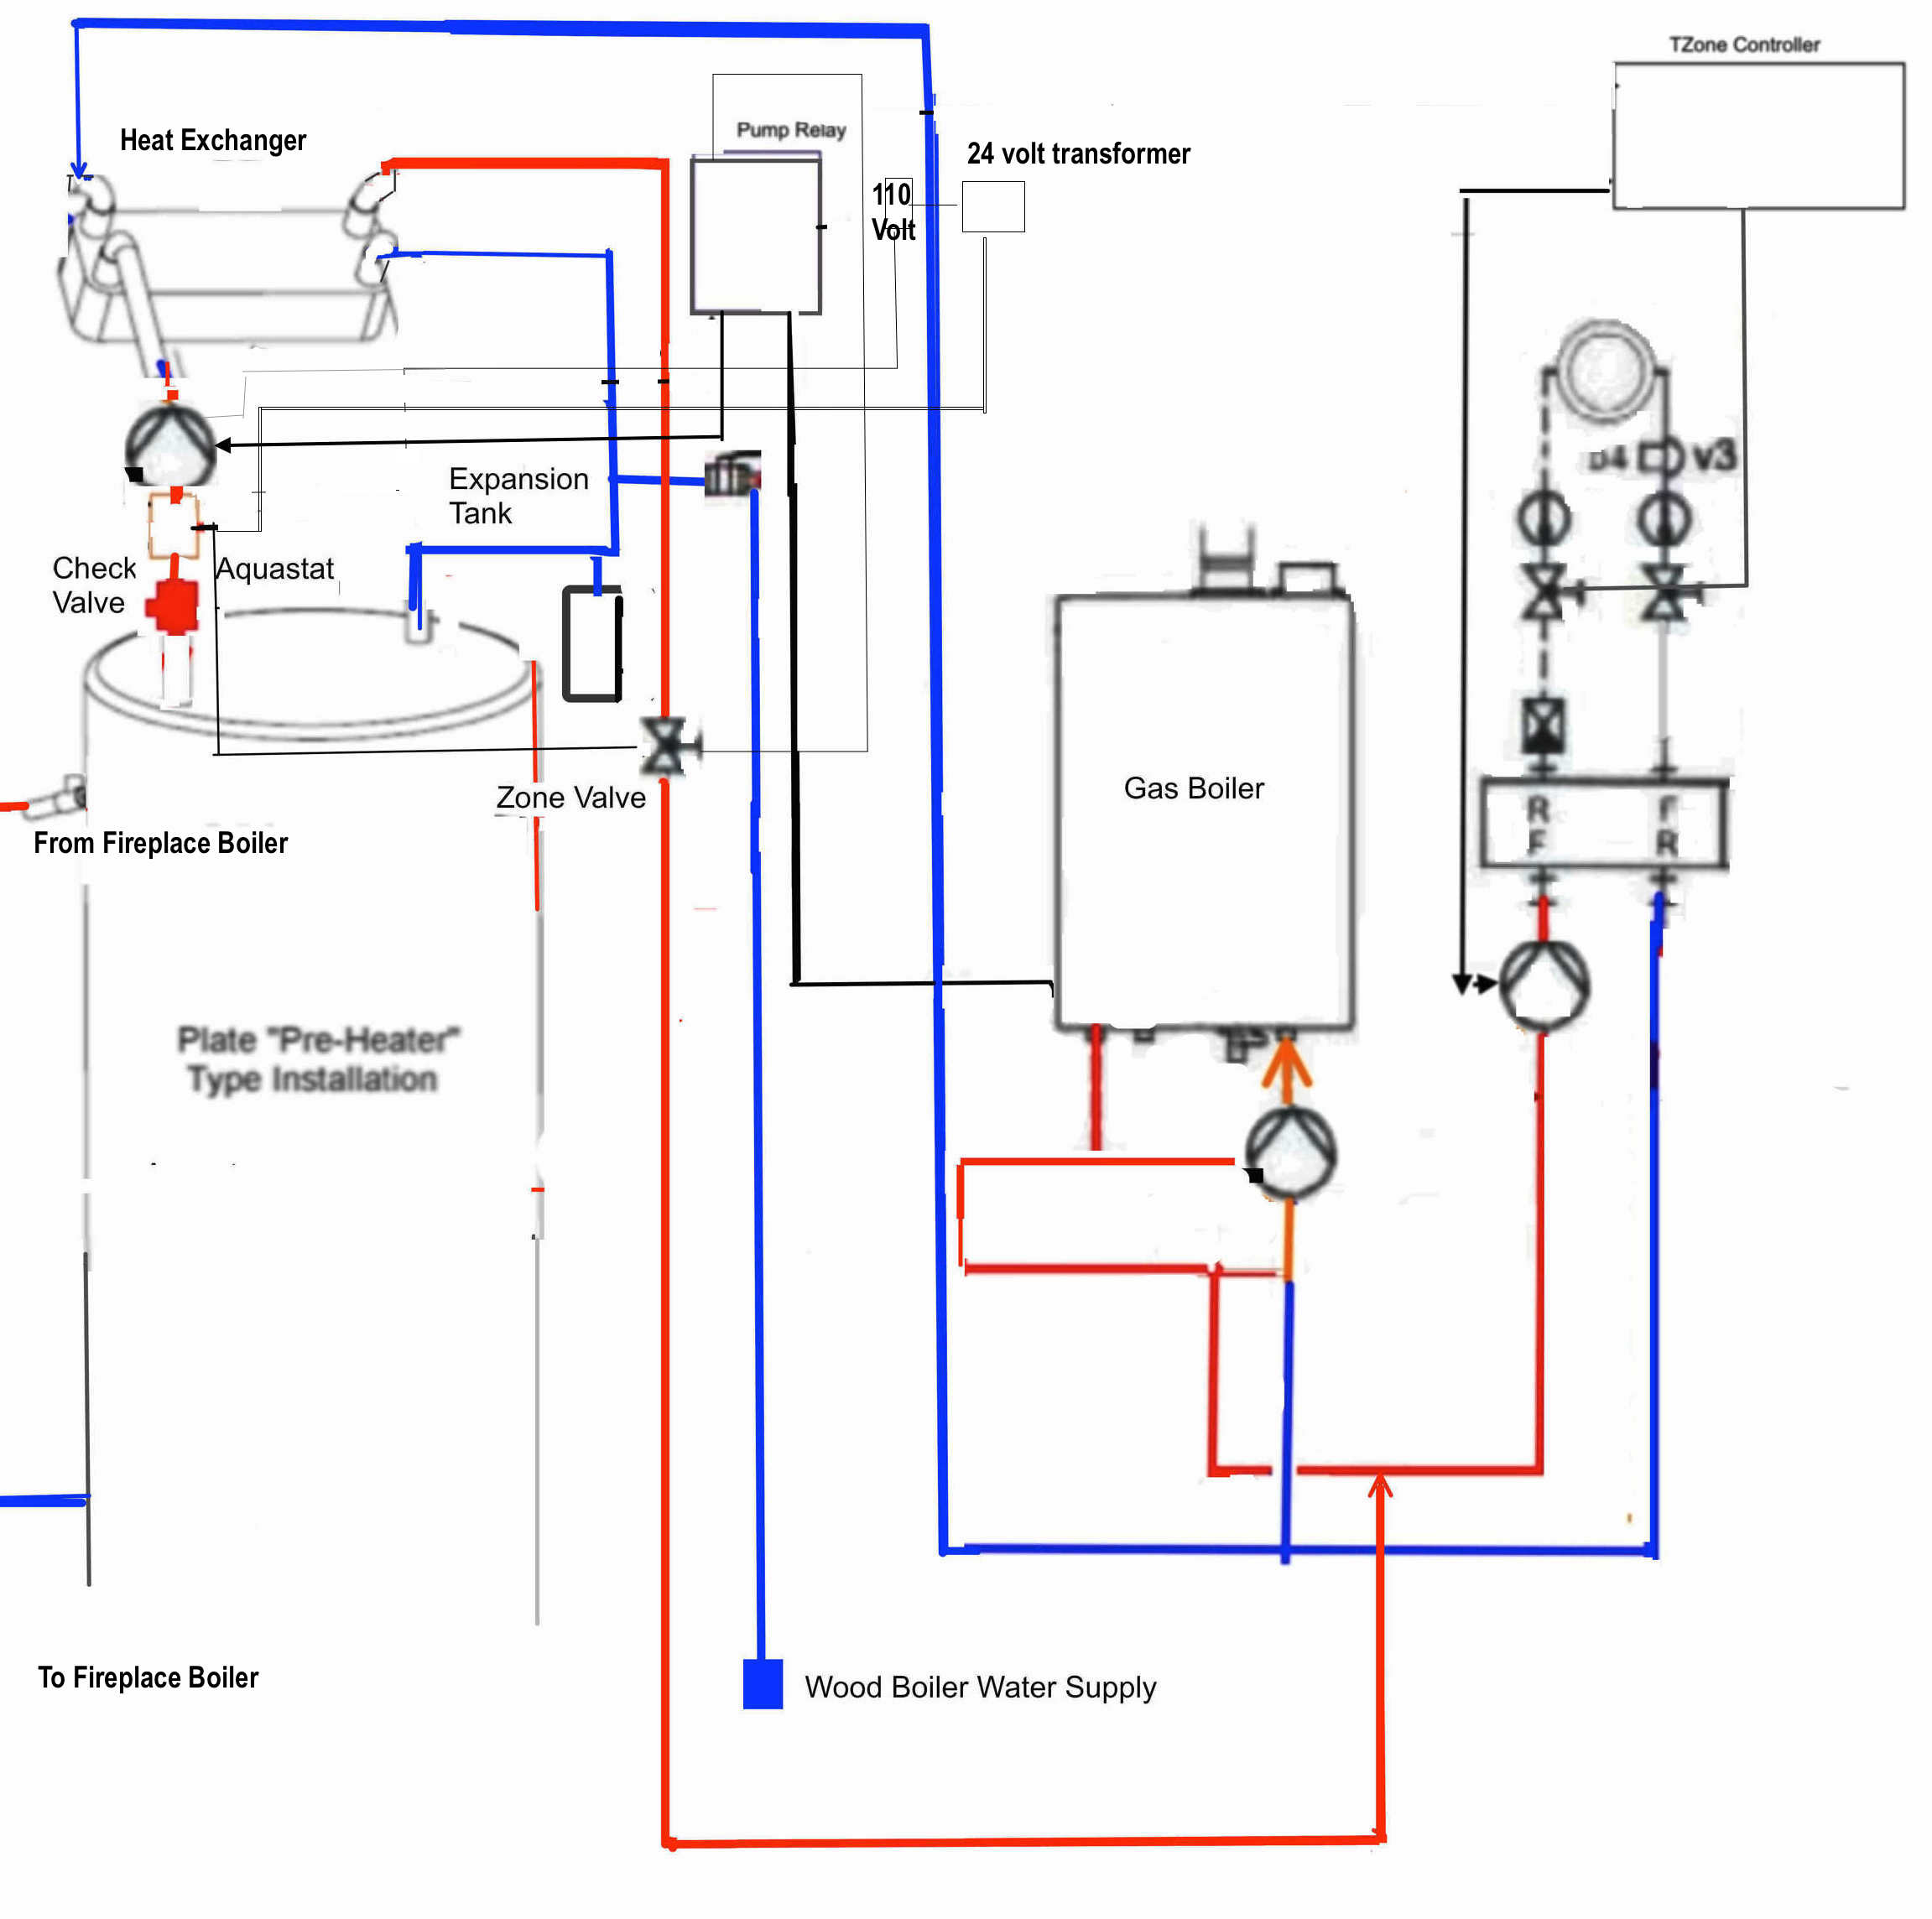 Storage FP Boiler Wiring zone valve wiring diagram zone valve piping diagram wiring diagram potterton ep2 wiring diagram at bayanpartner.co